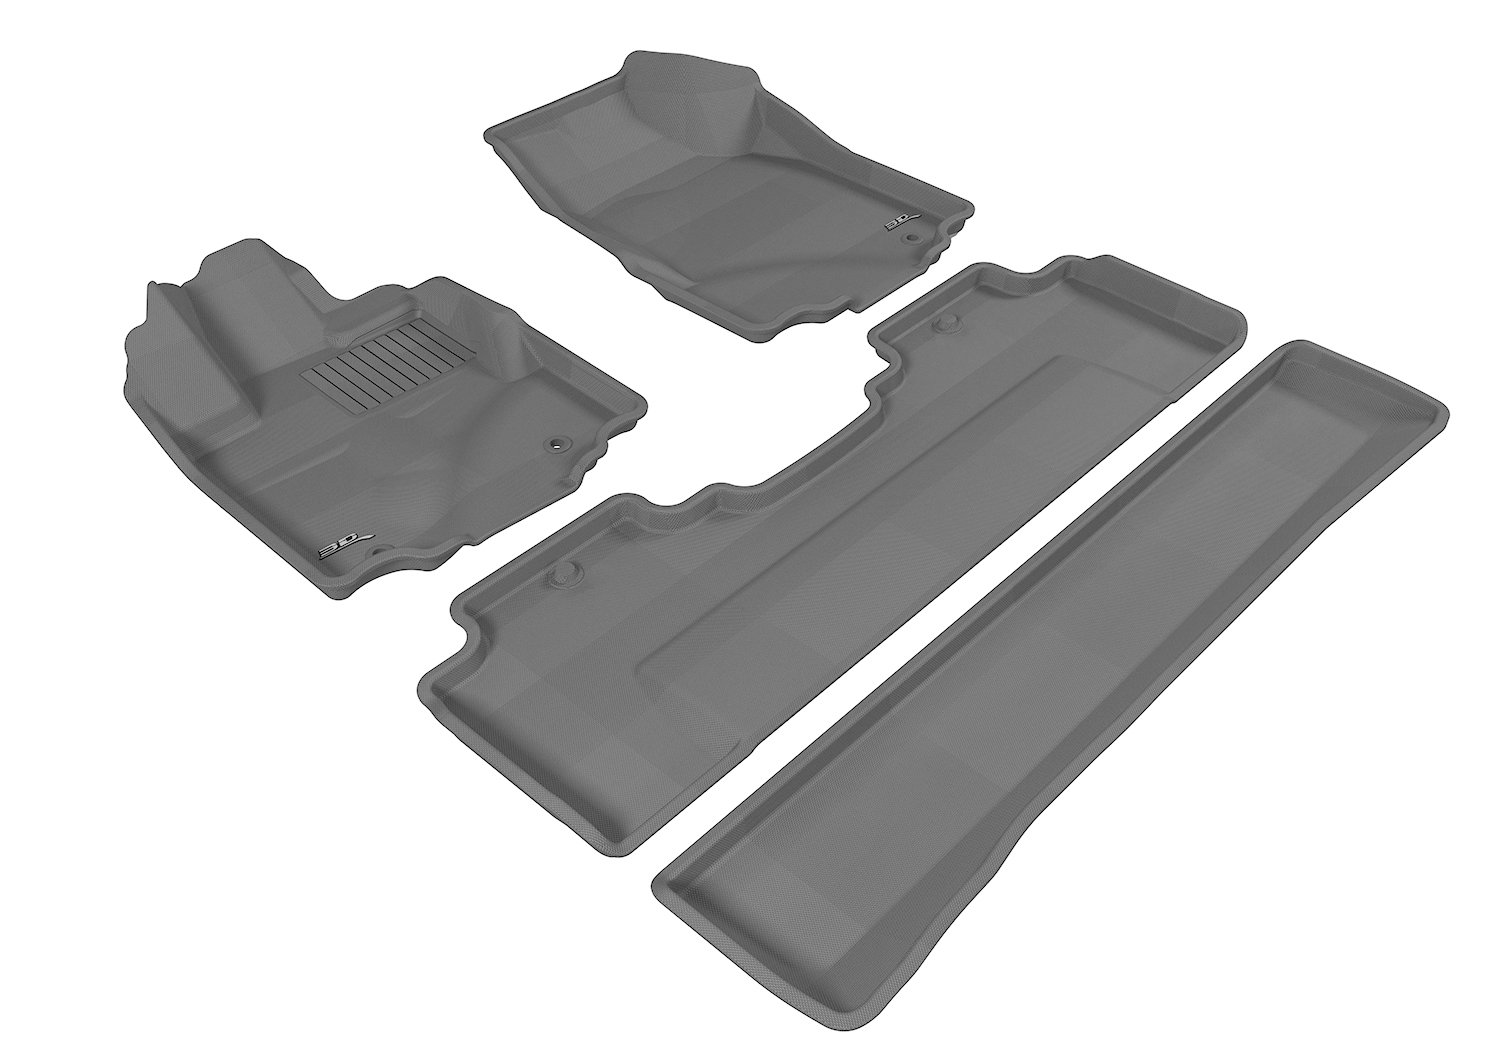 3D MAXpider Second Row Custom Fit All-Weather Floor Mat for Select Honda Ridgeline Models Gray Kagu Rubber